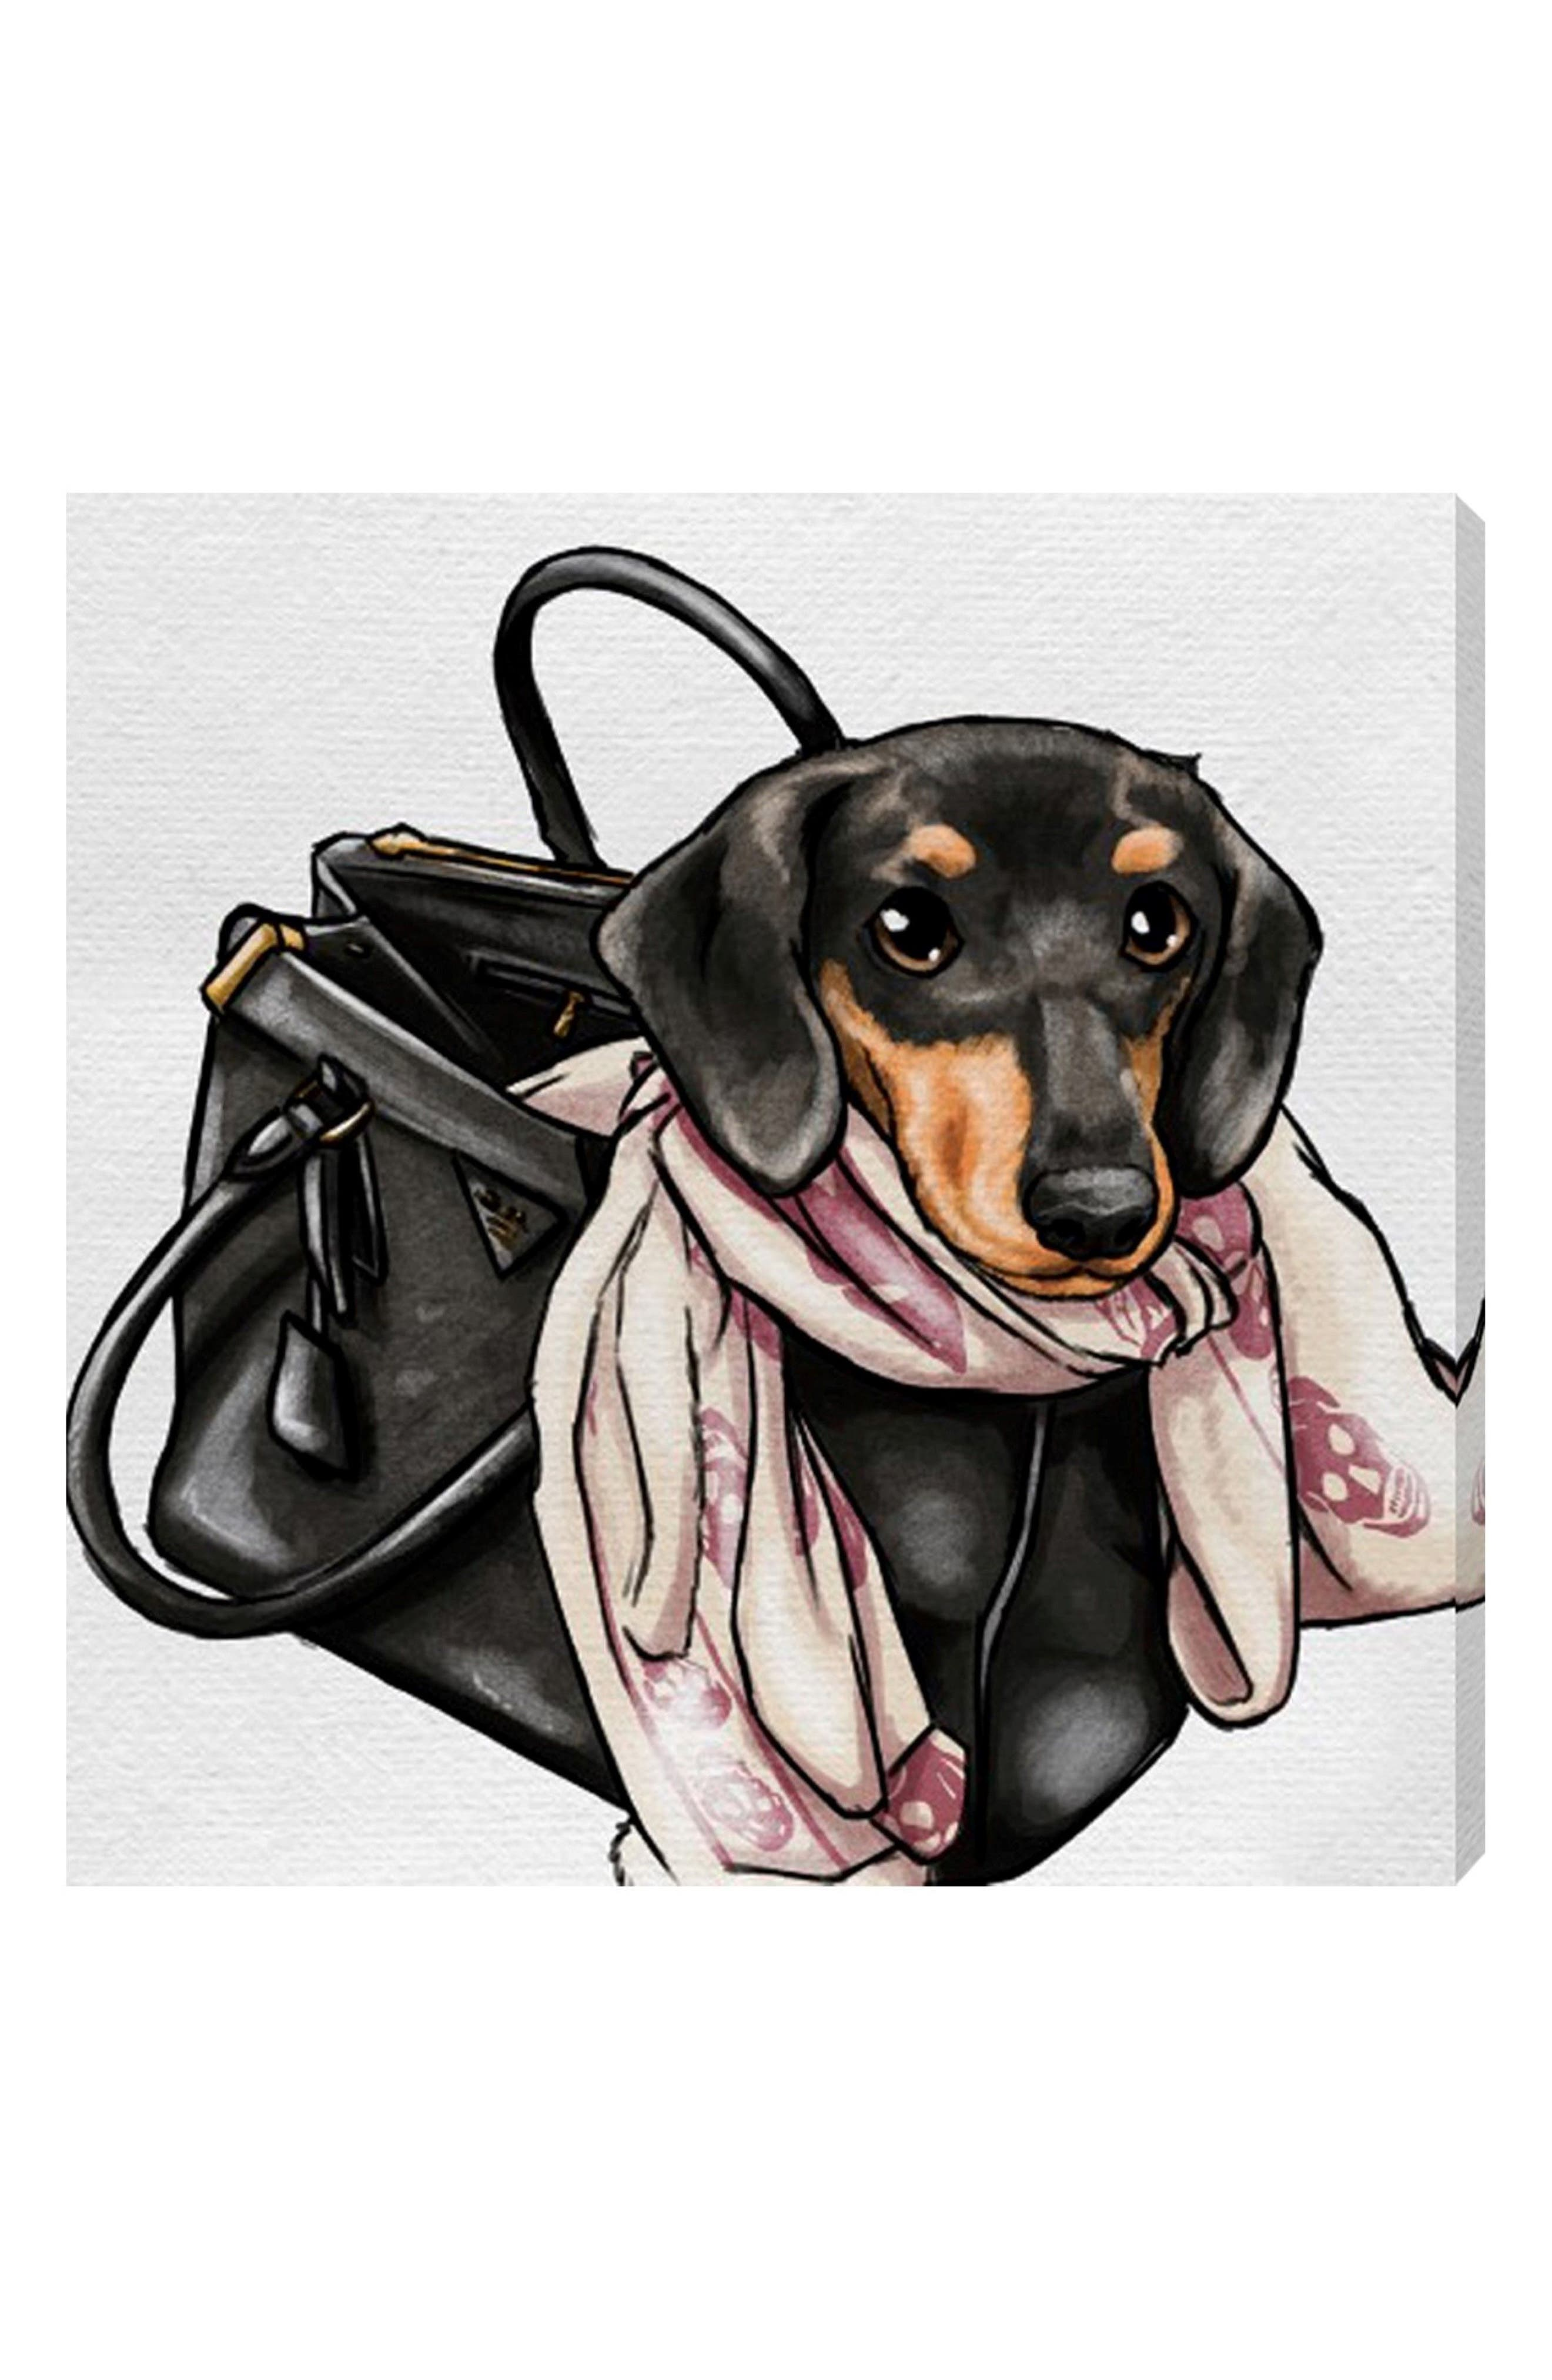 Alternate Image 1 Selected - Oliver Gal Most Favorite Companion Canvas Wall Art